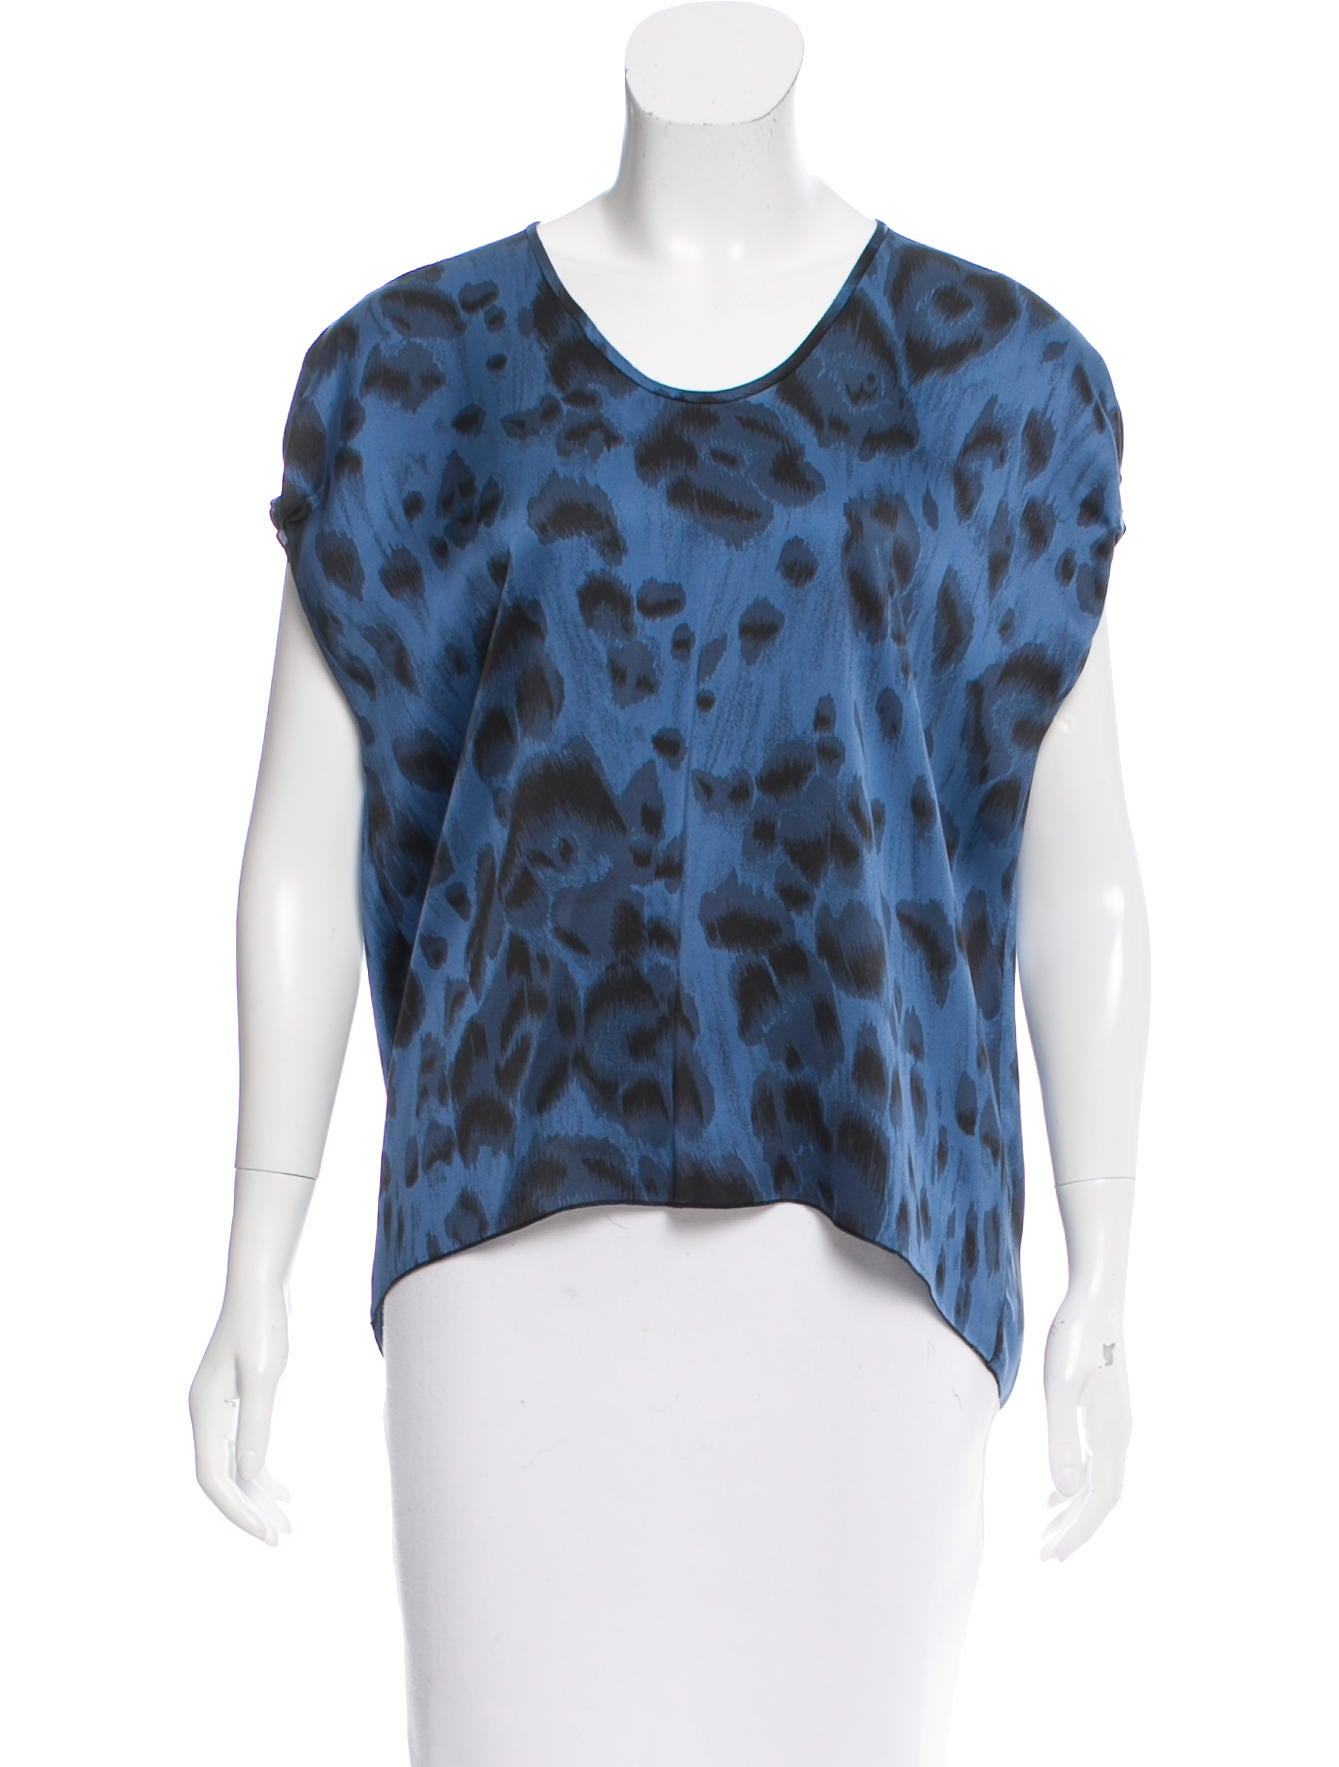 Women'S Short Sleeve Silk Blouse 89